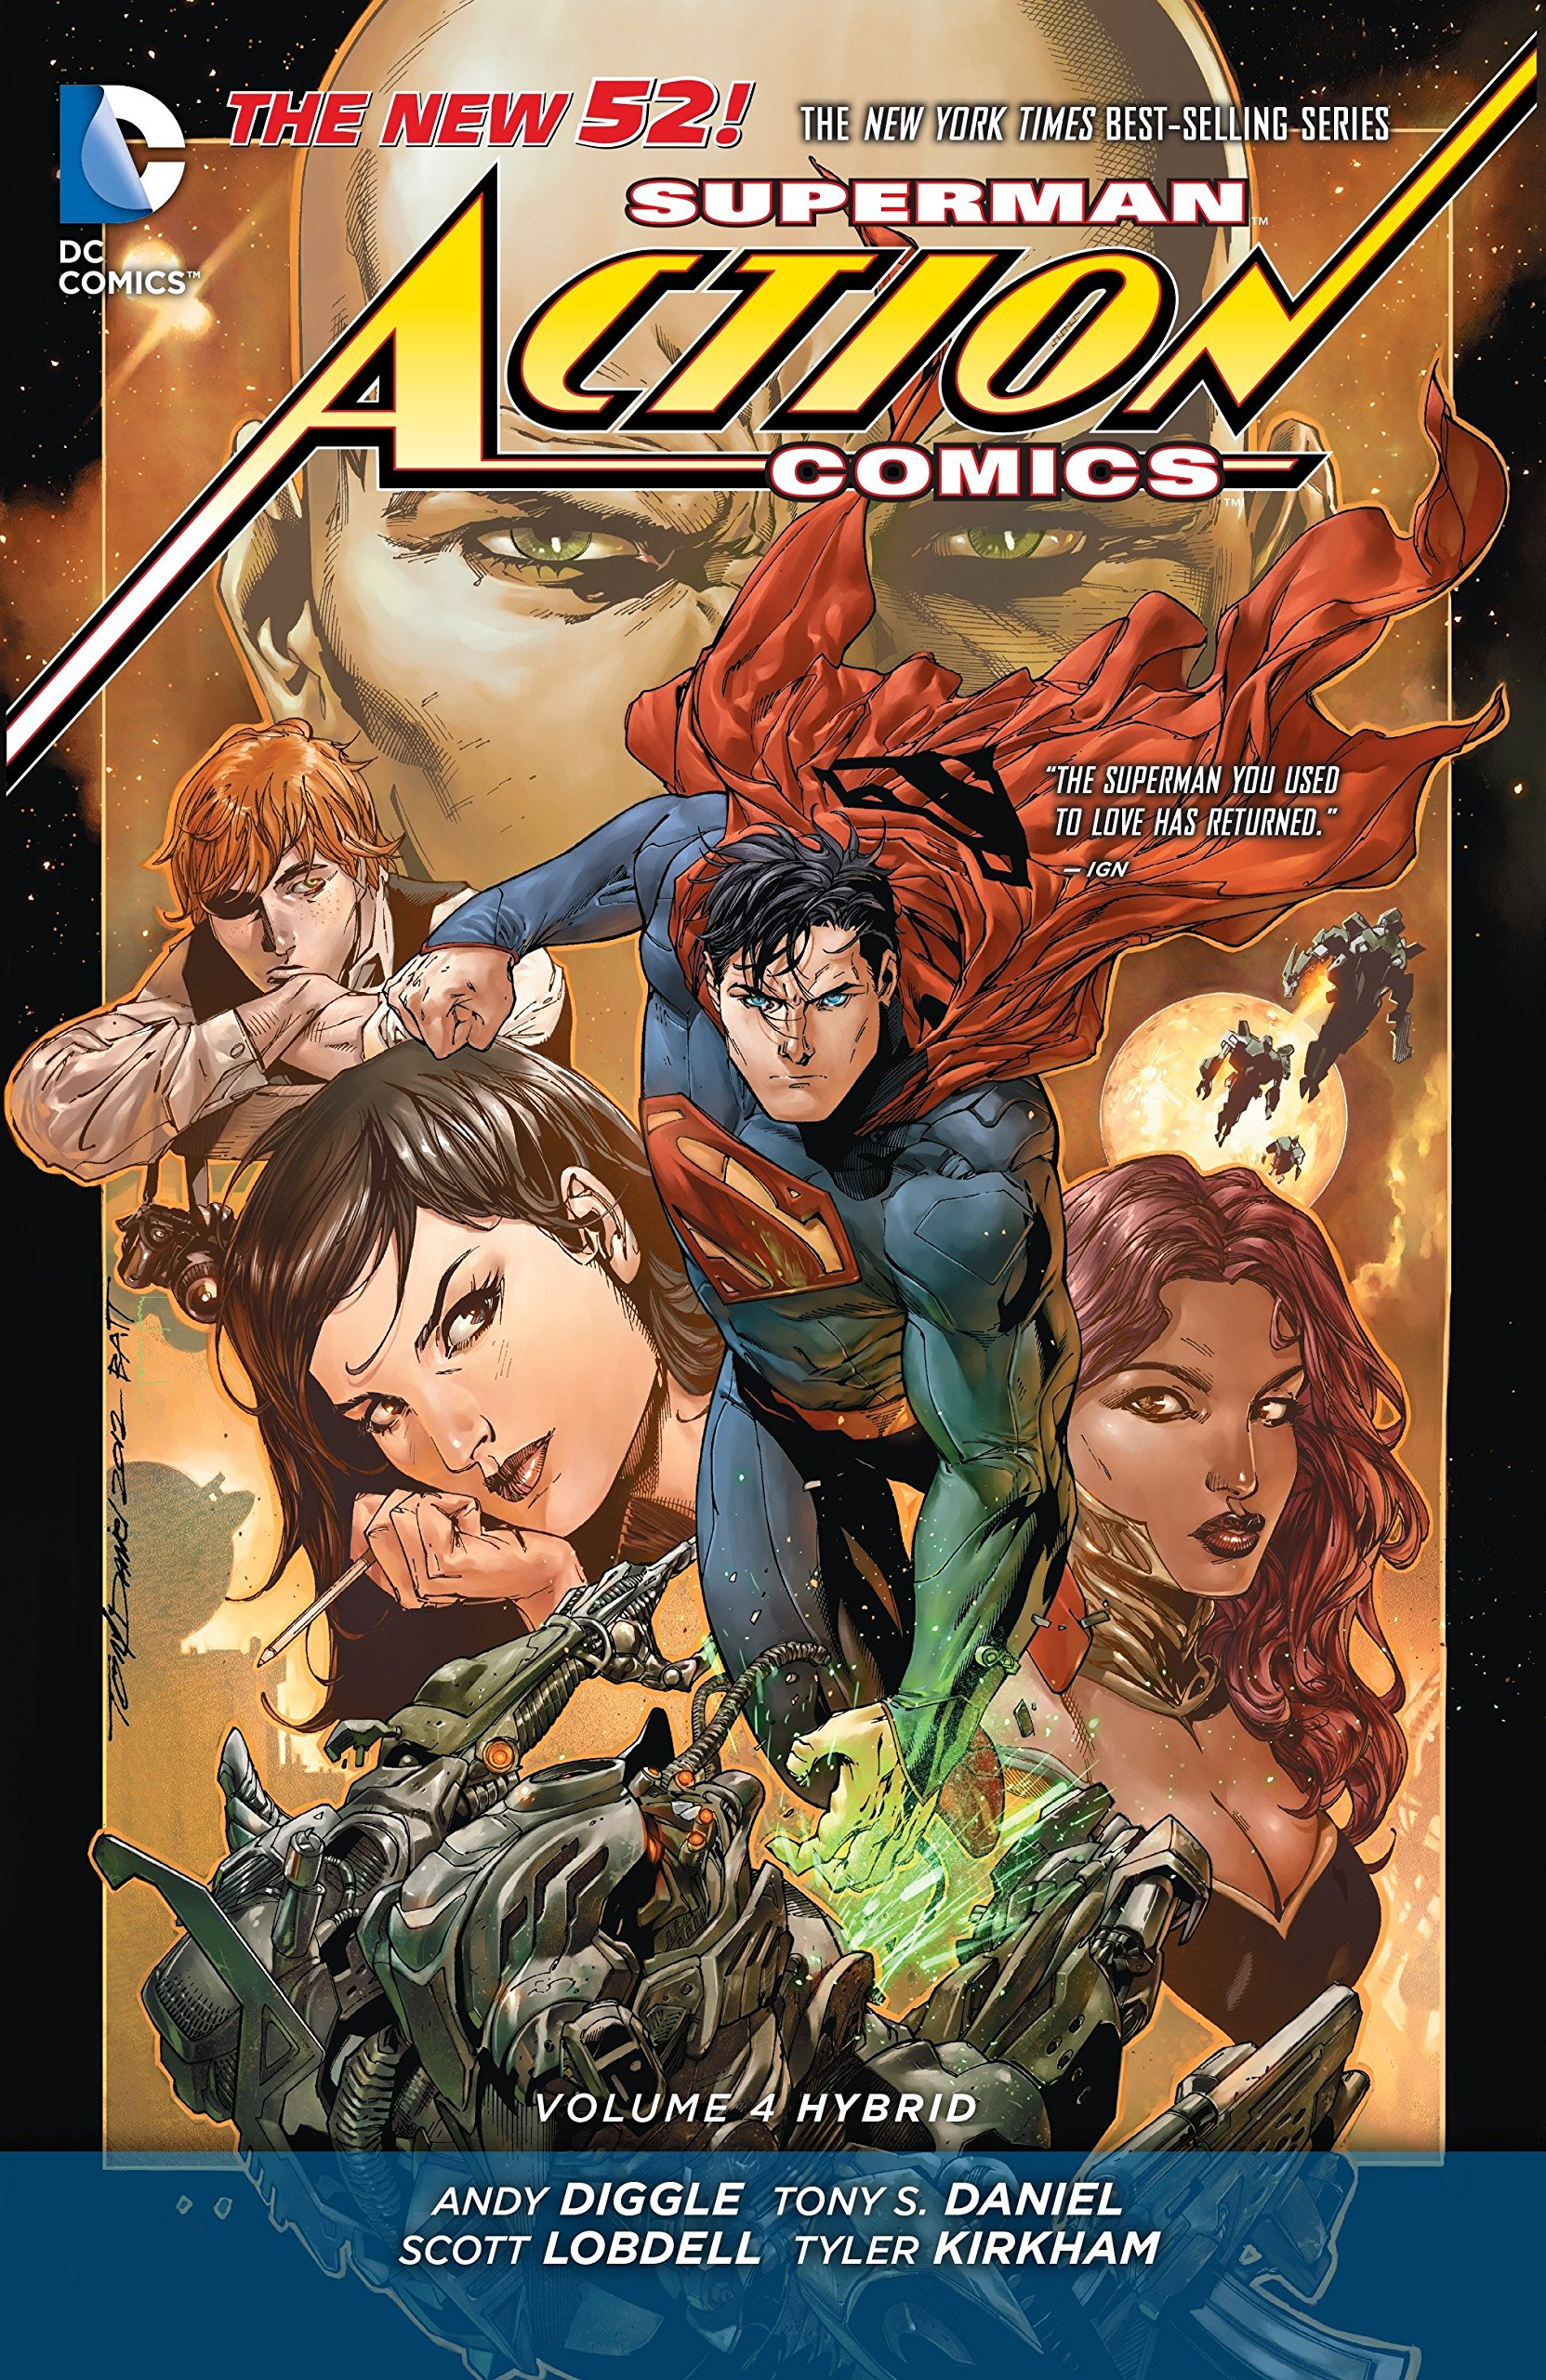 Read Online Superman: Action Comics Vol. 4: Hybrid (The New 52) PDF Text fb2 ebook